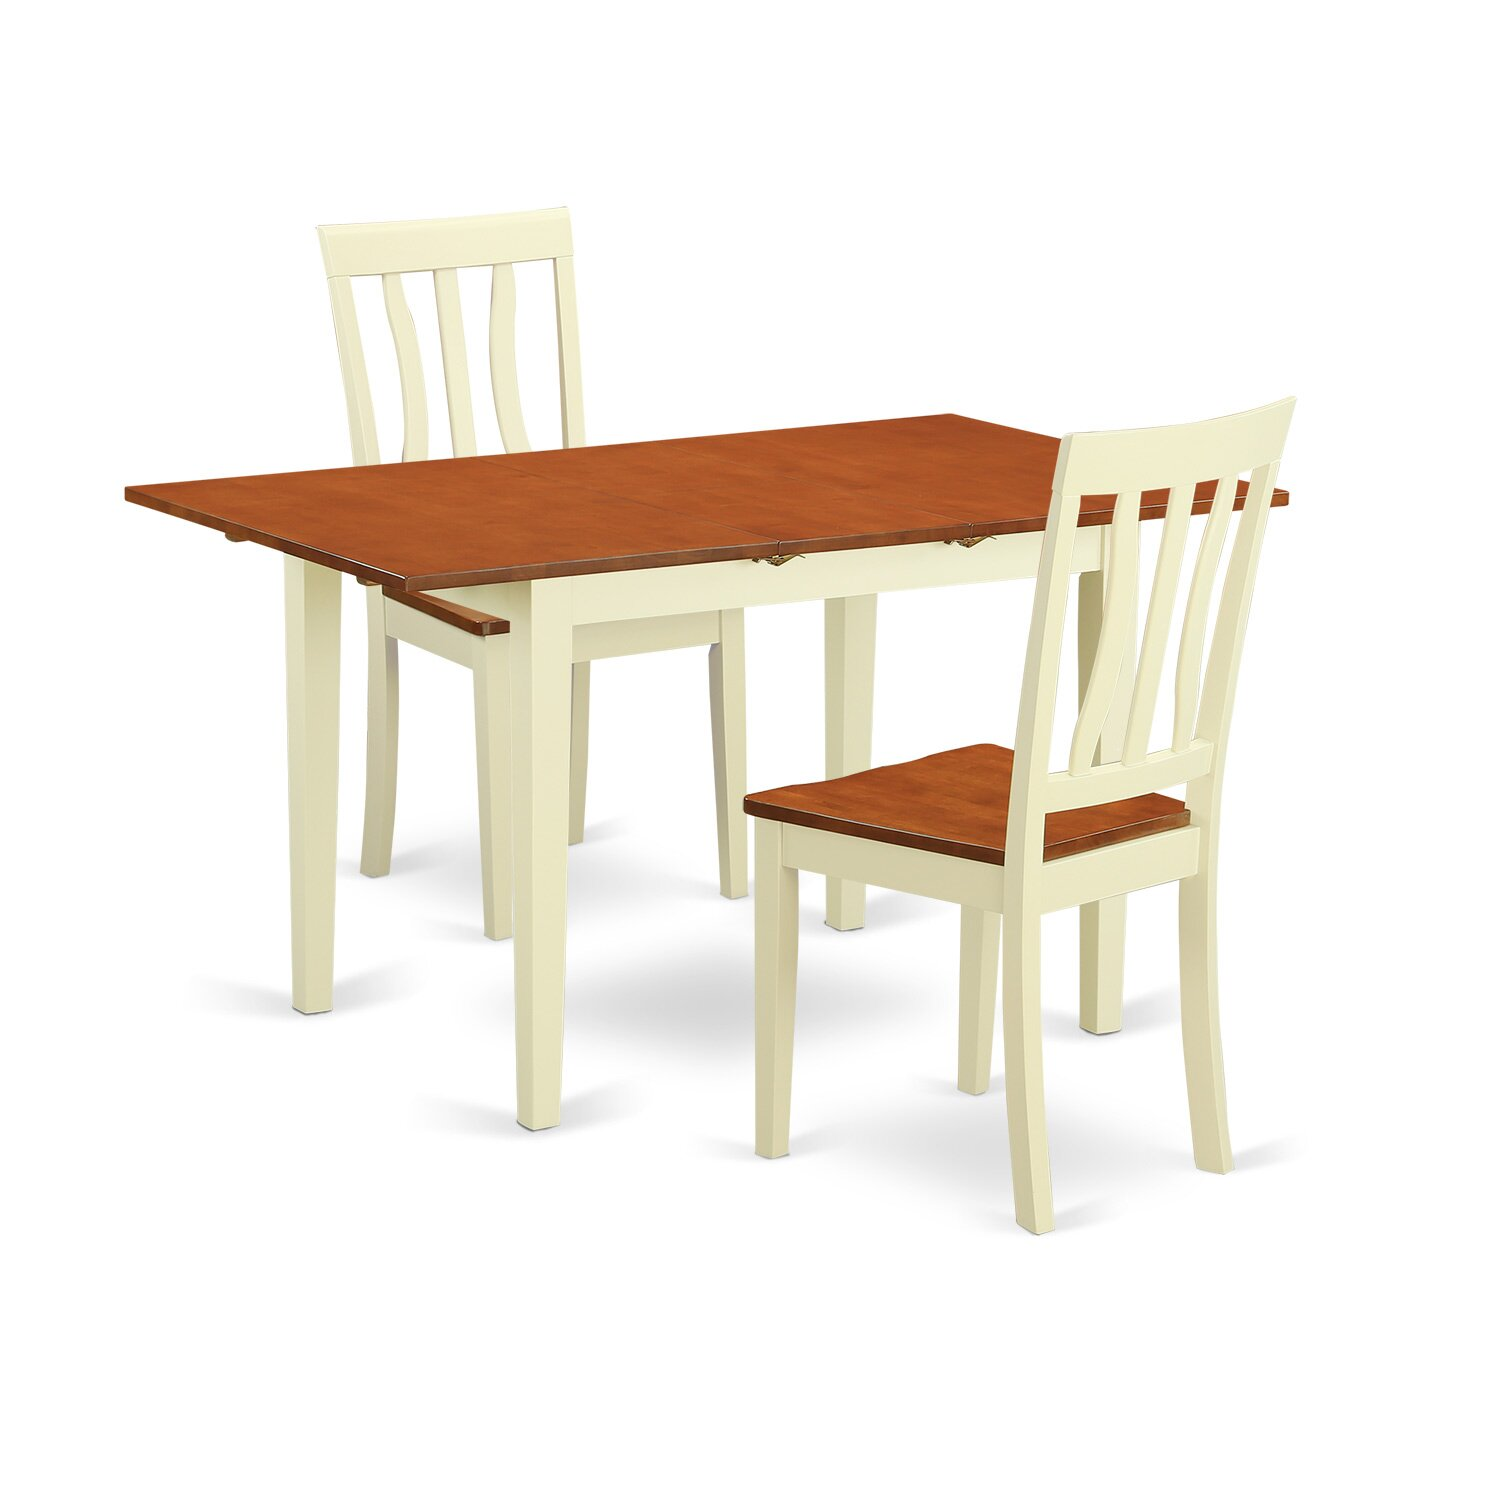 Wooden importers 3 piece dining set reviews wayfair for 2 piece furniture set